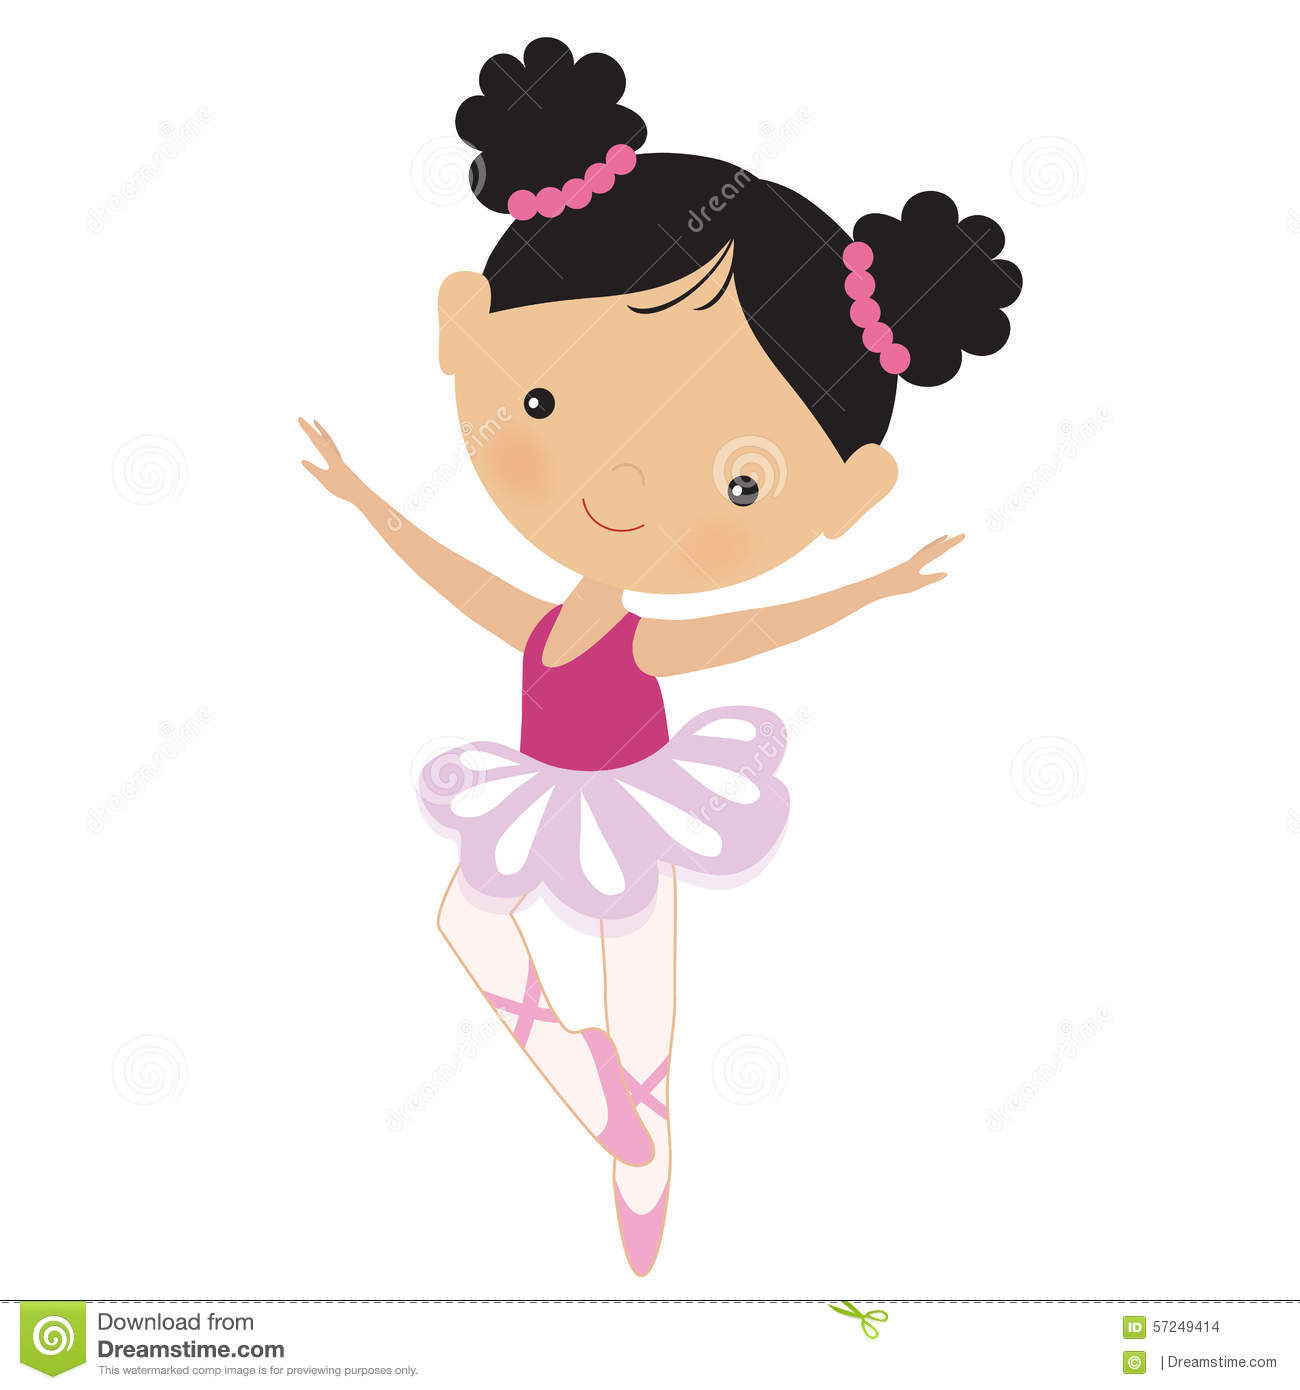 Cute Baby Girl Child Wallpaper Cute Pink Ballerina Vector Illustration Stock Vector